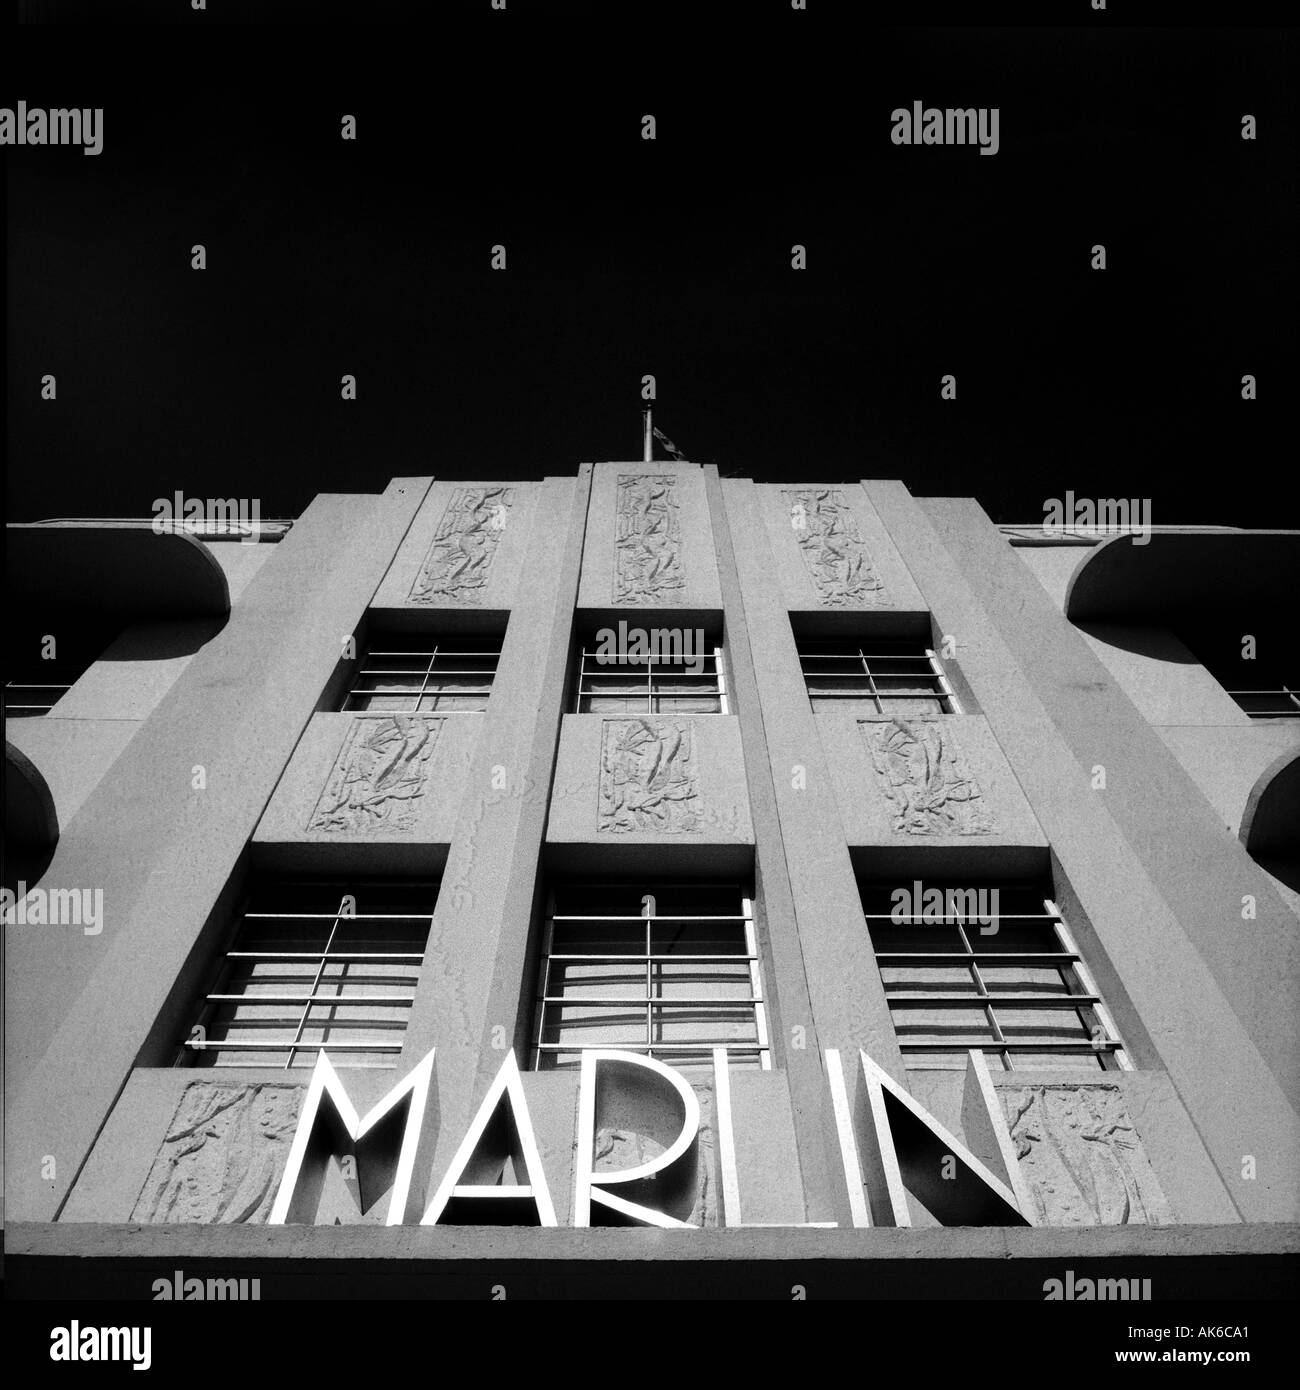 Fachada de la Marlin hotel en Miami Distrito Art Deco de South Beach Imagen De Stock